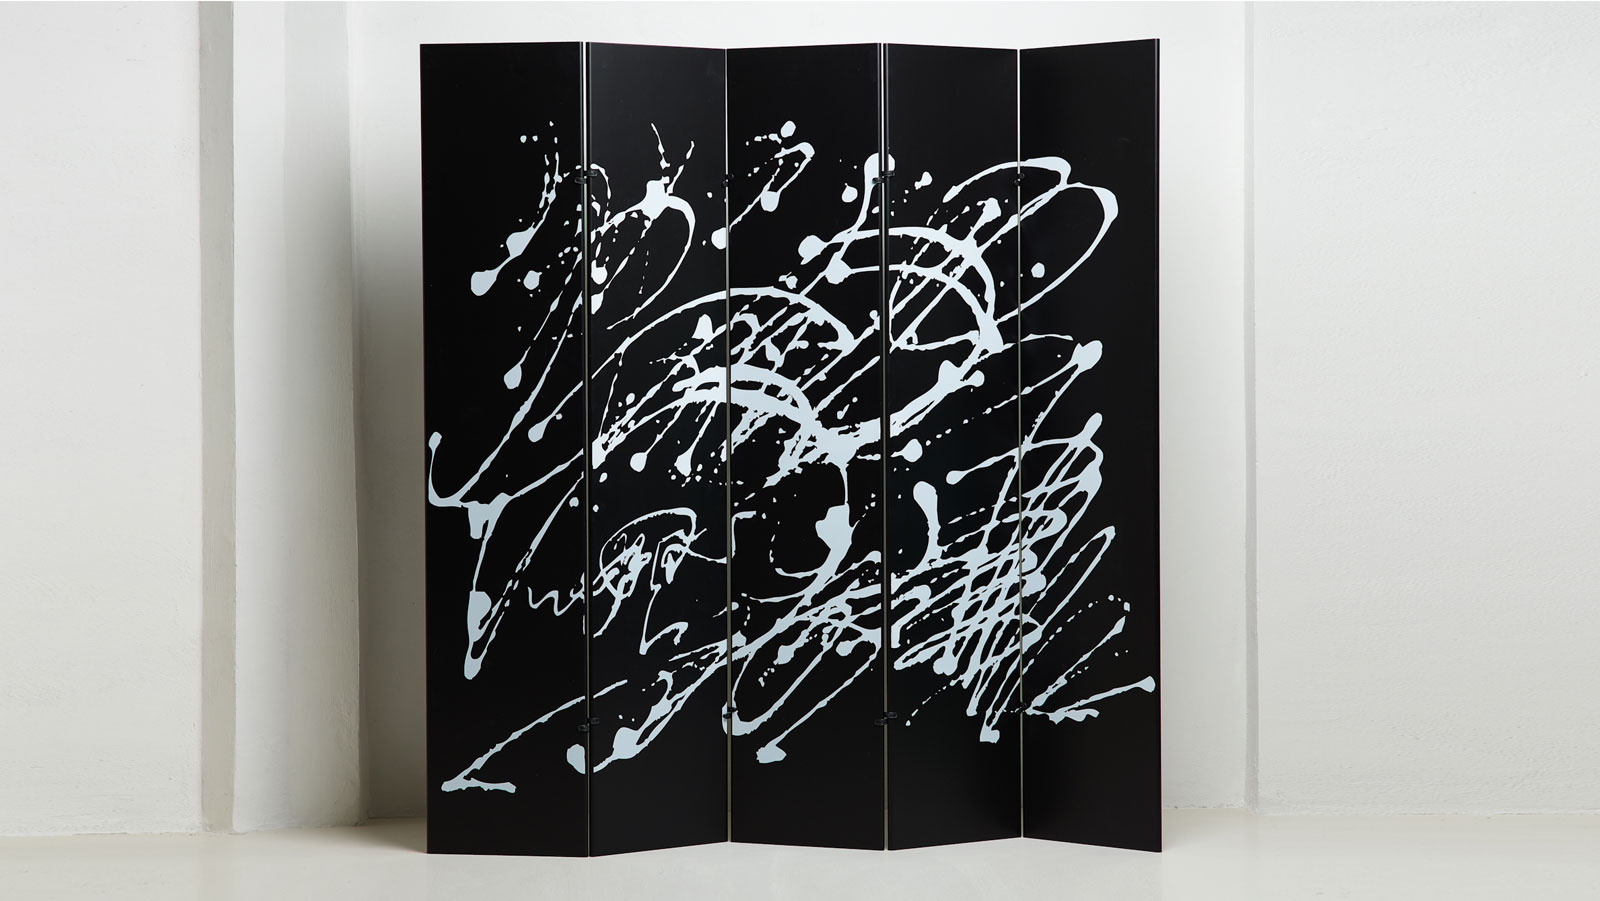 Jackson Pollock screen by Gavina and Takahama | Paradisoterrestre